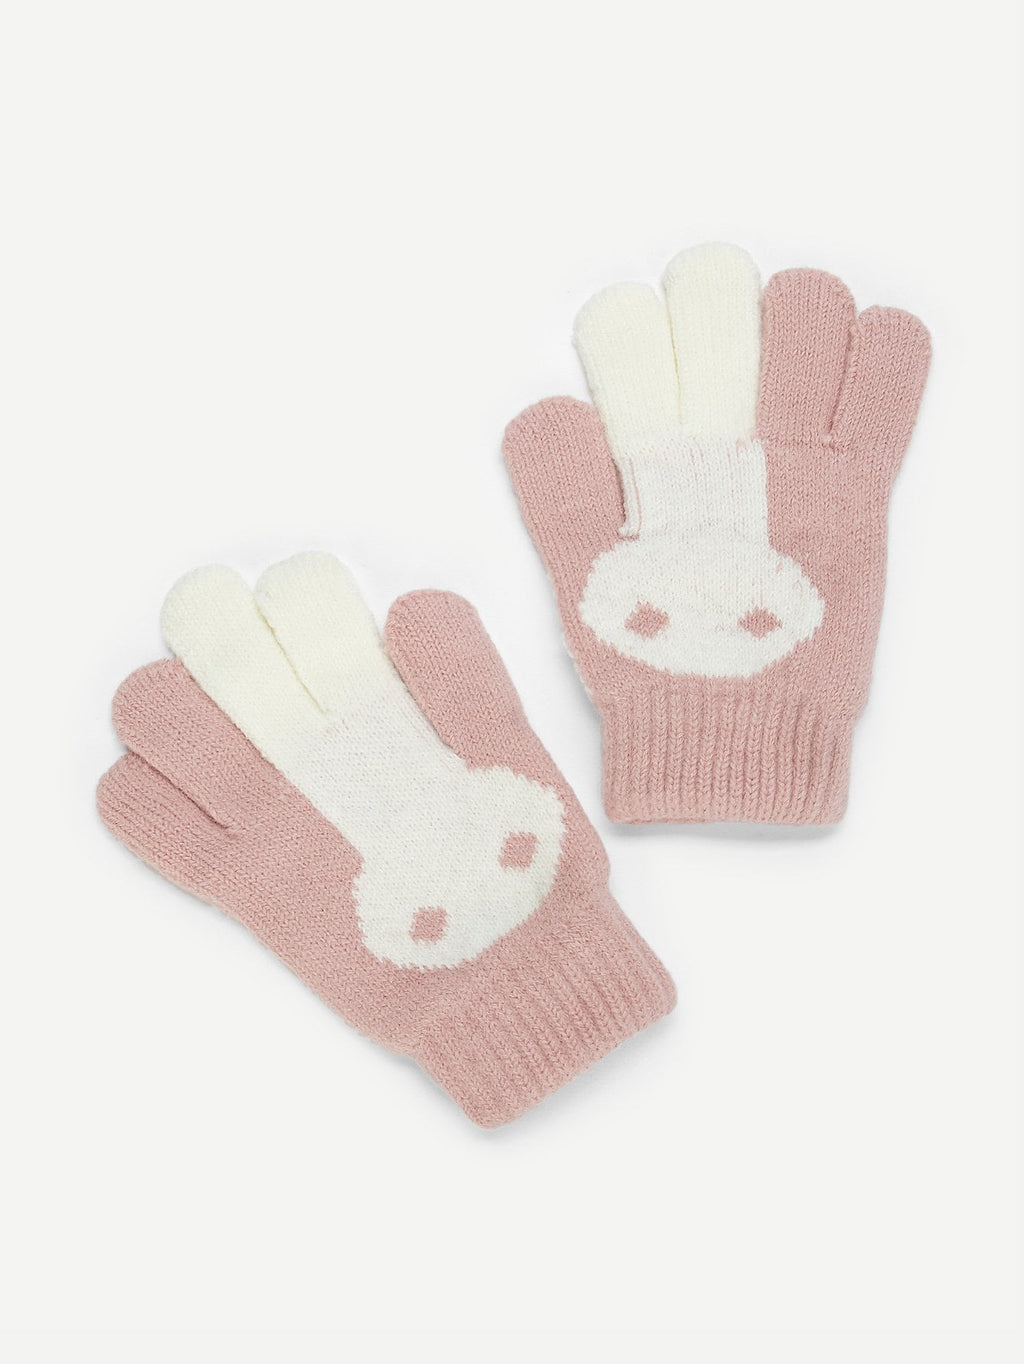 Girls Gloves -  Knit Gloves